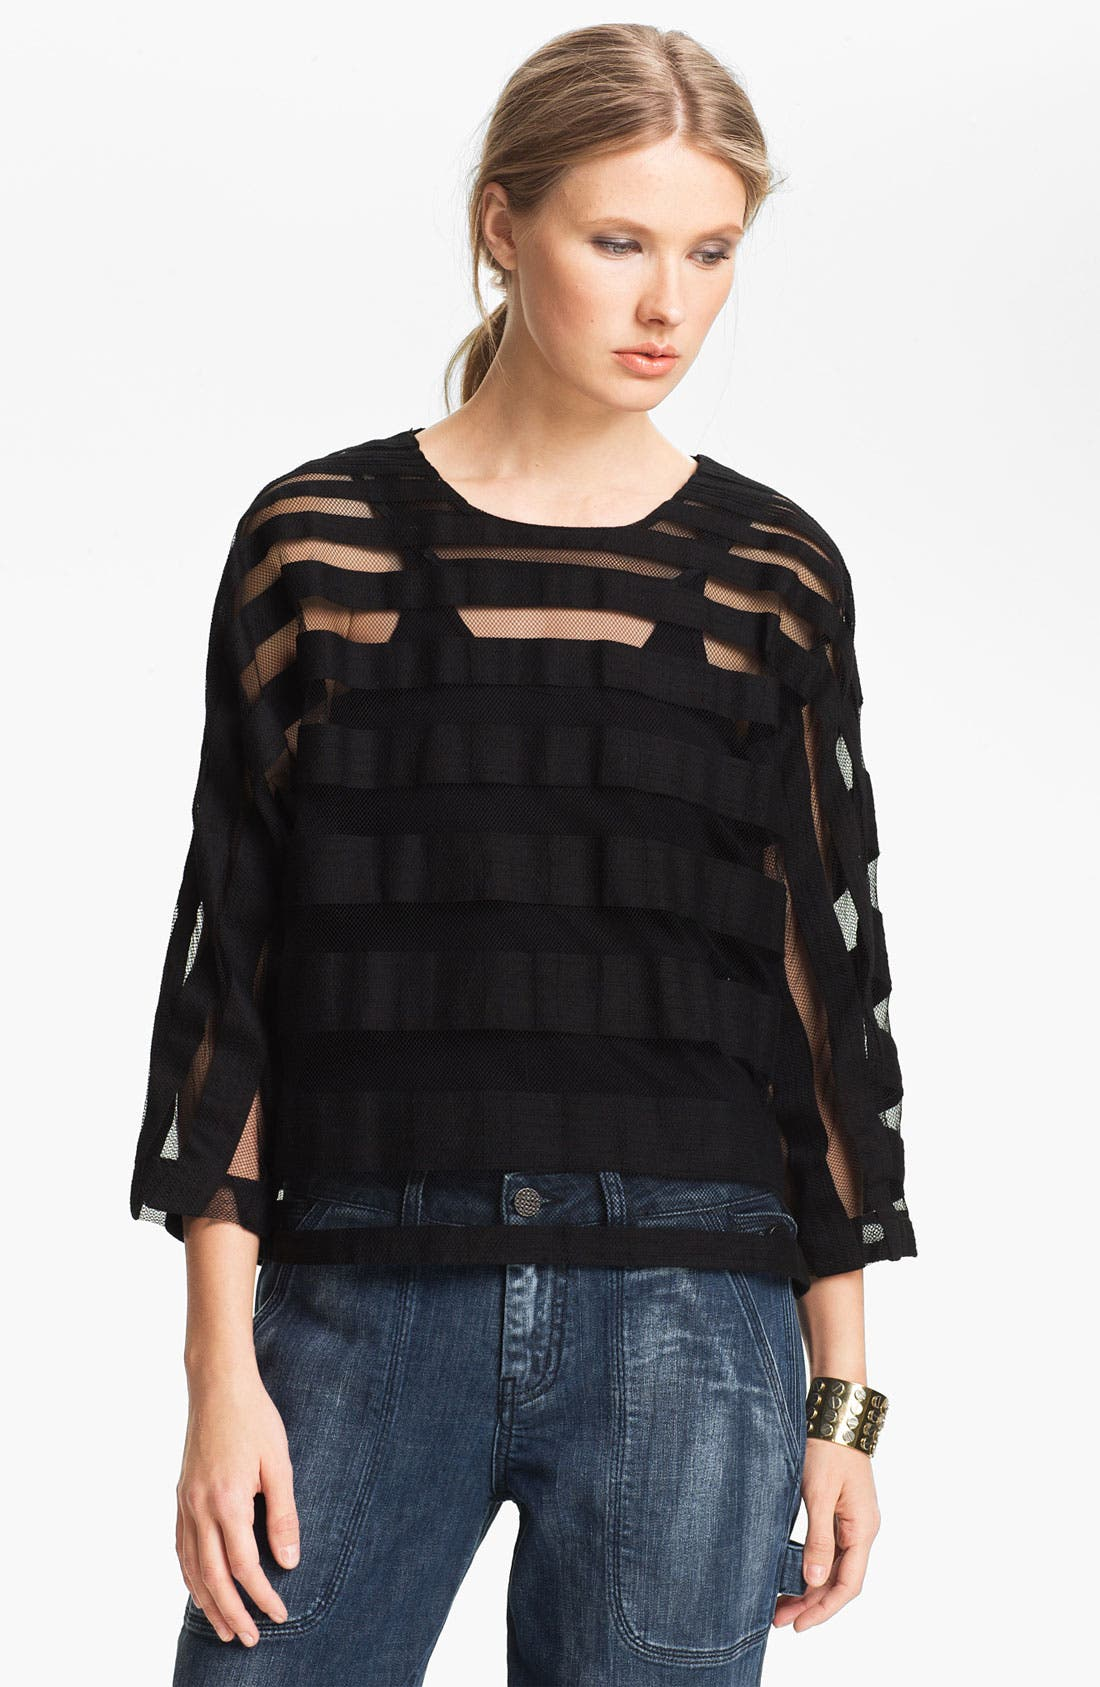 Alternate Image 1 Selected - Kelly Wearstler 'Masonry' Sheer Top